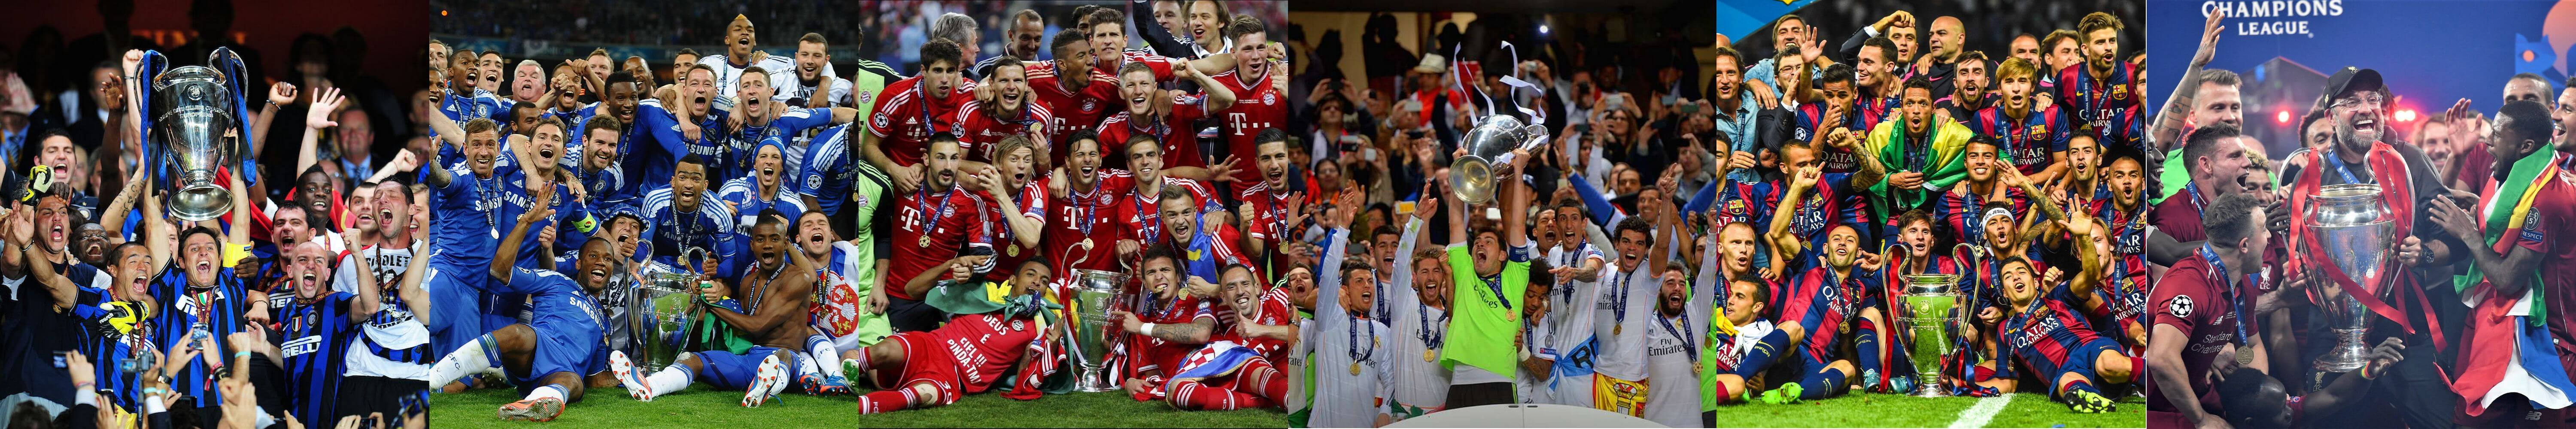 Champions League winners 2010s